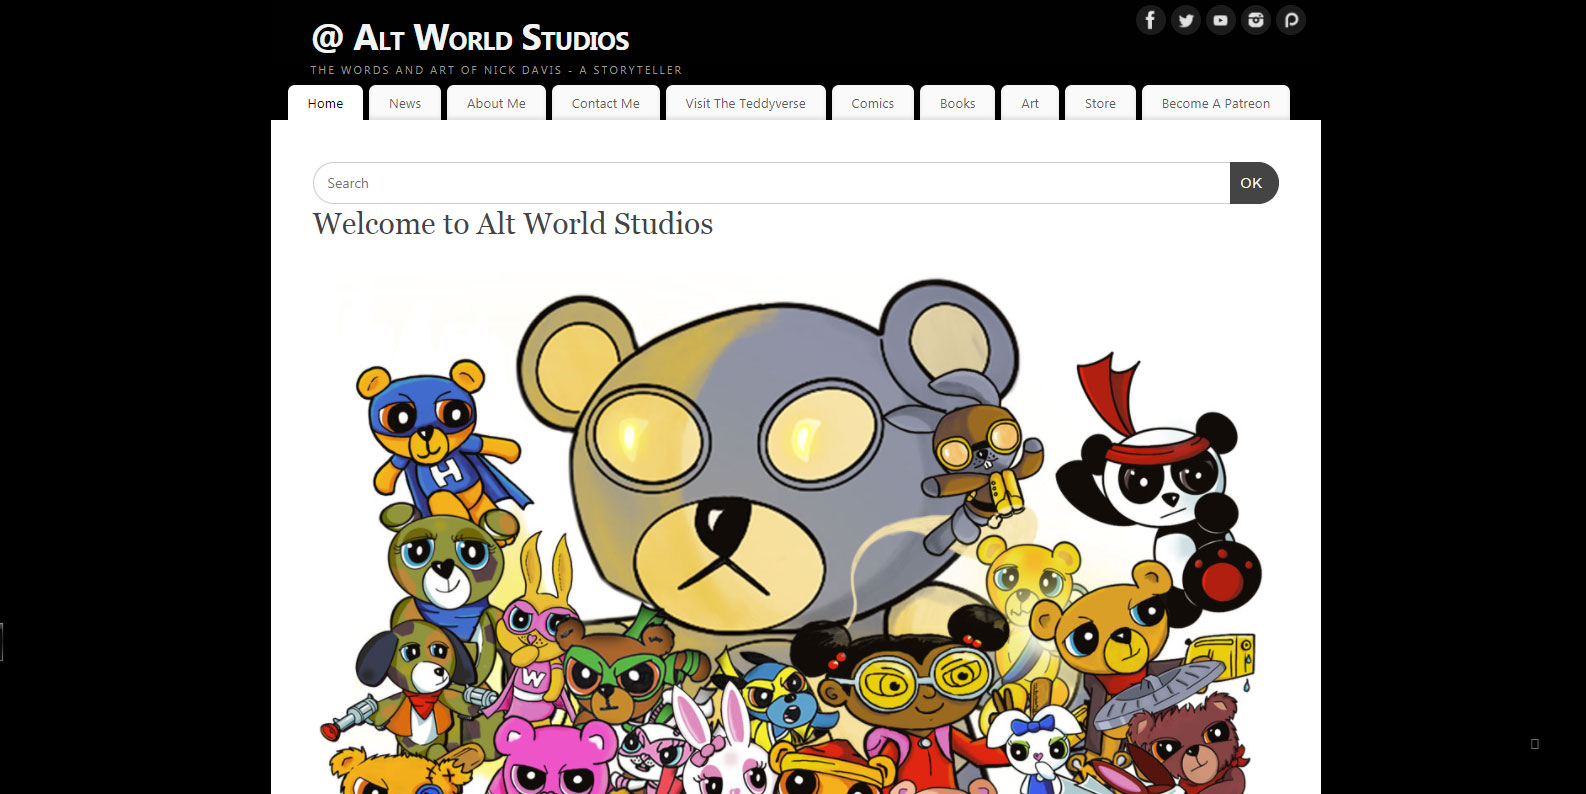 The Old Alt World Studios Website